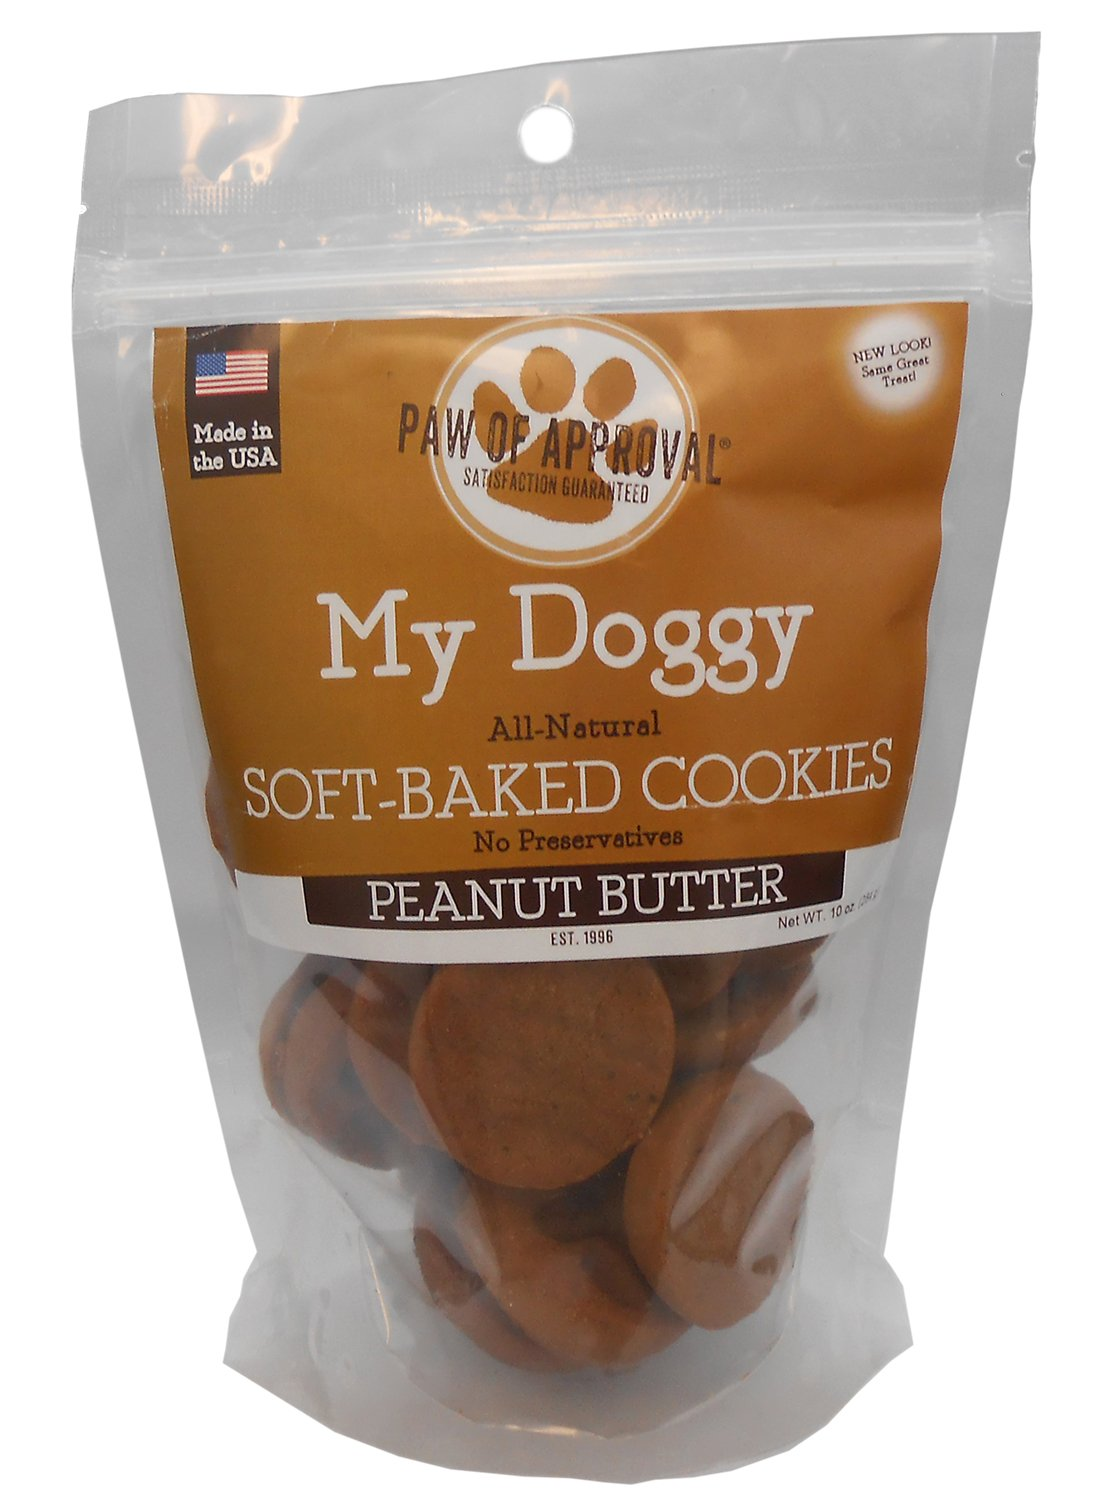 My Doggy Soft-Baked Cookies Dog Treats - 10 Ounces (Peanut Butter)